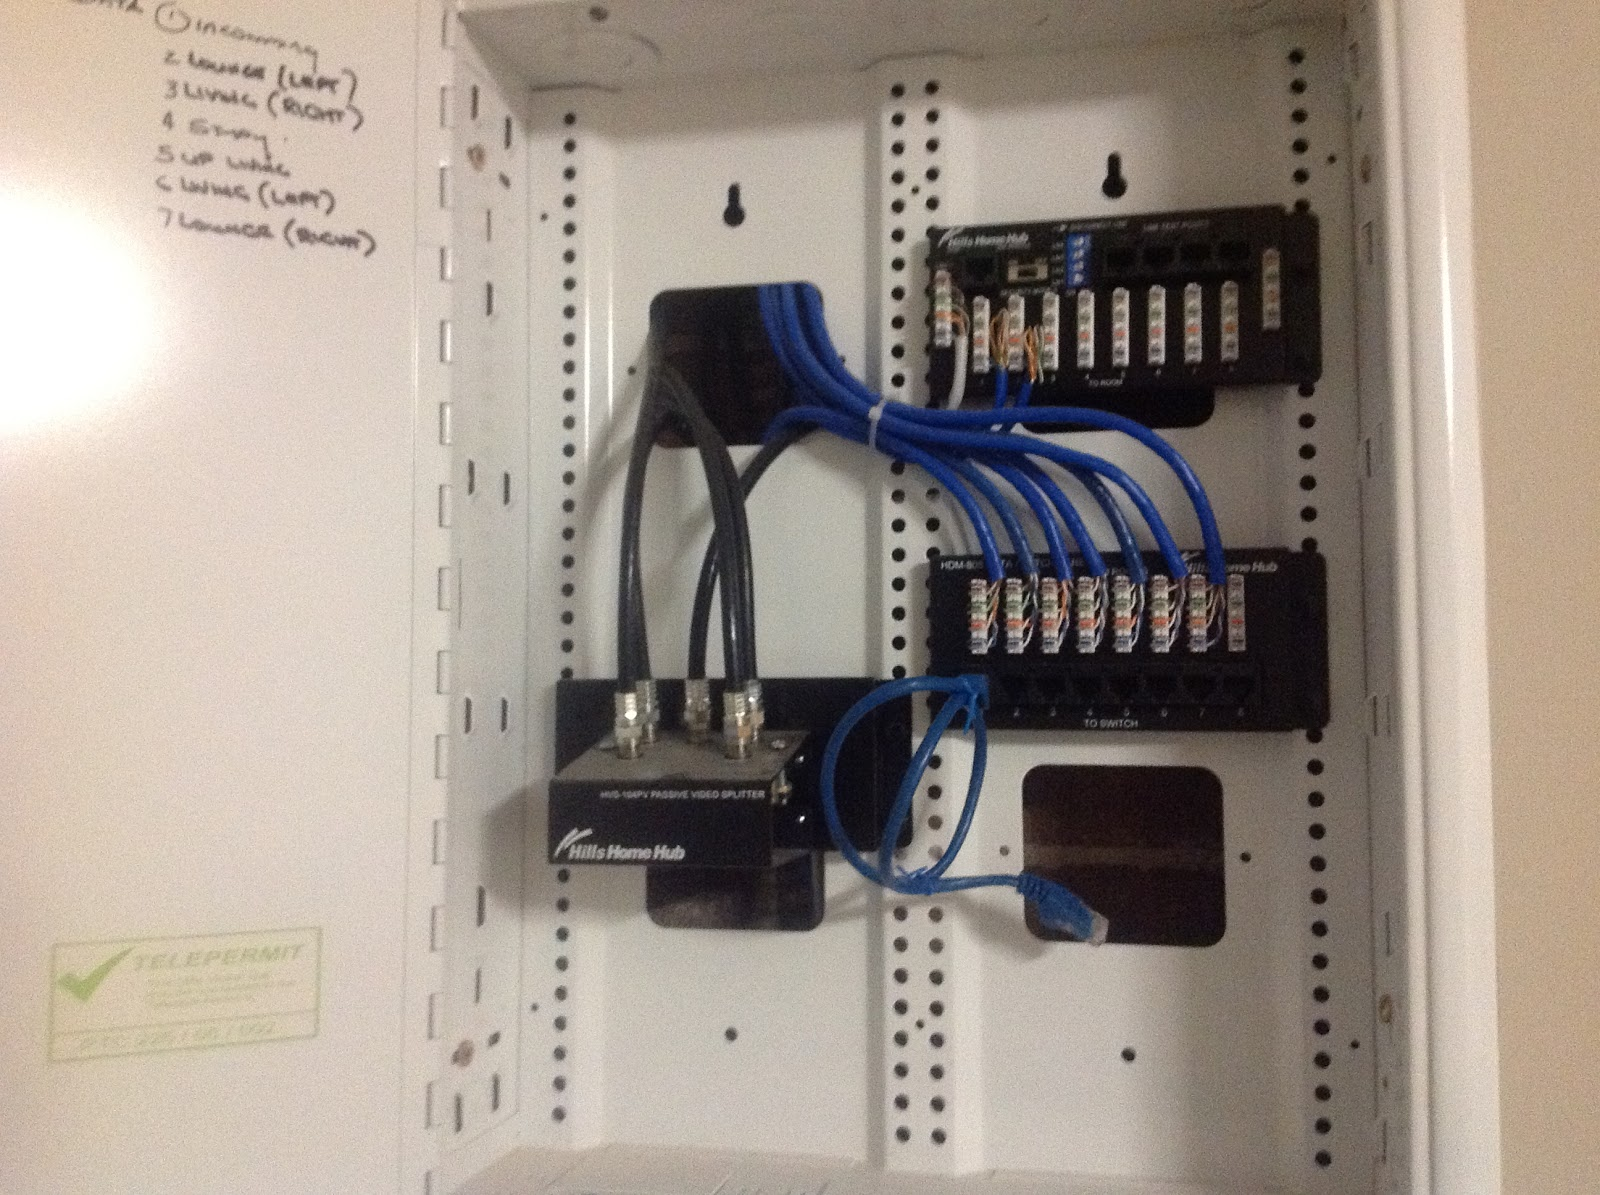 photo luke and peta's building blog why i chose iinet for my fibre hills home hub wiring diagram at gsmportal.co